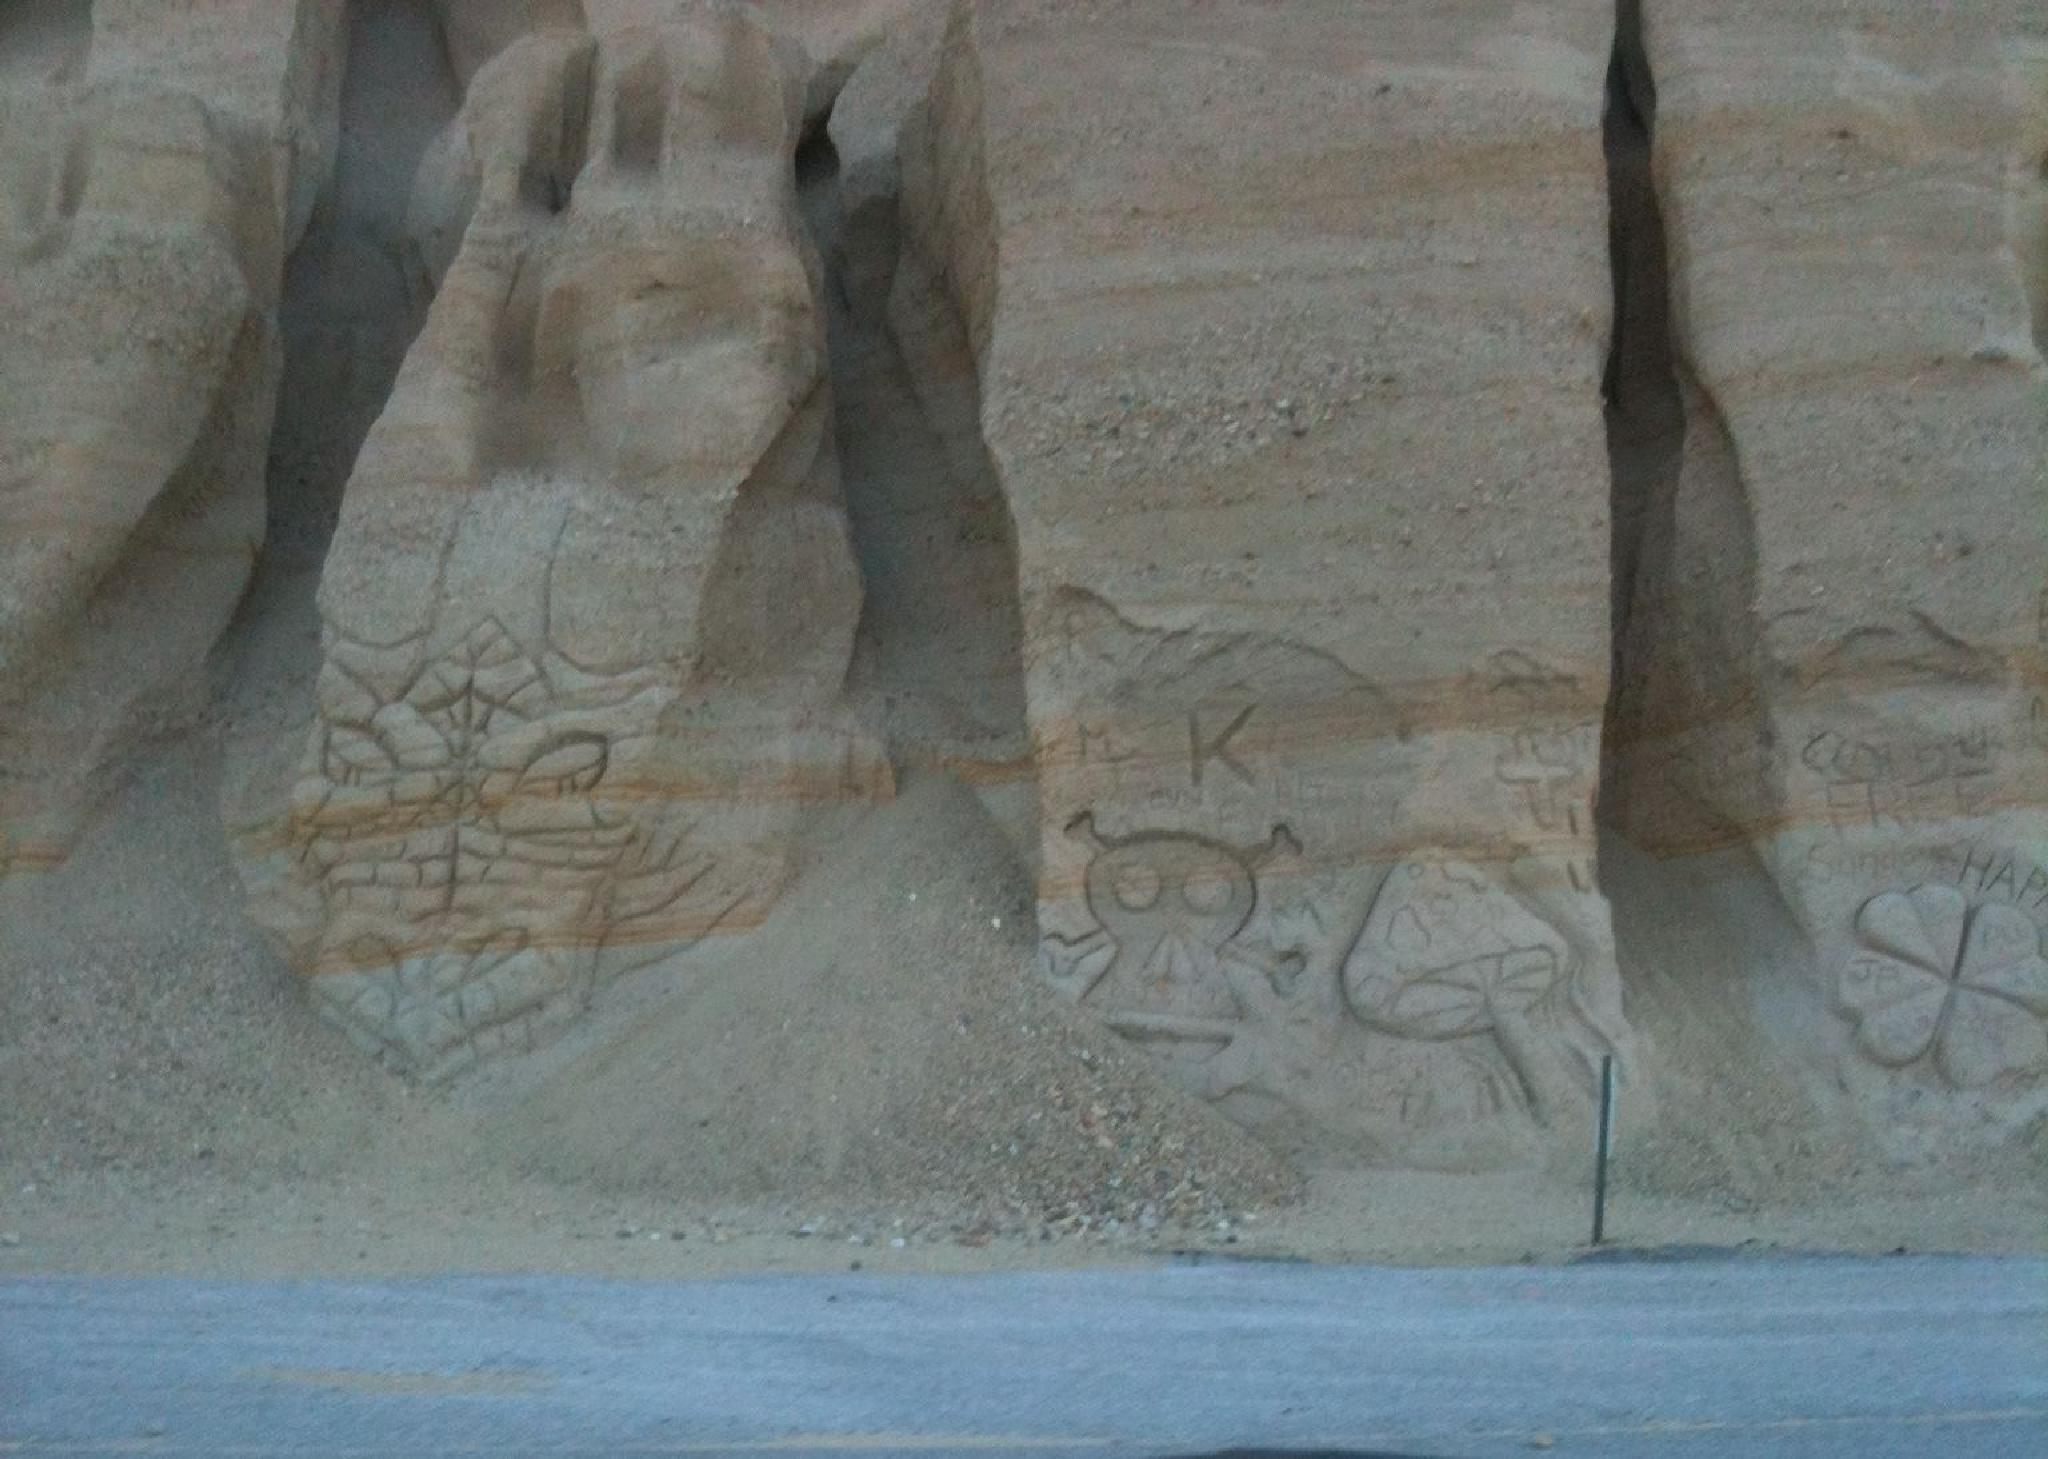 Grimes Canyon, CA - Sandstone carvings by metalhaid